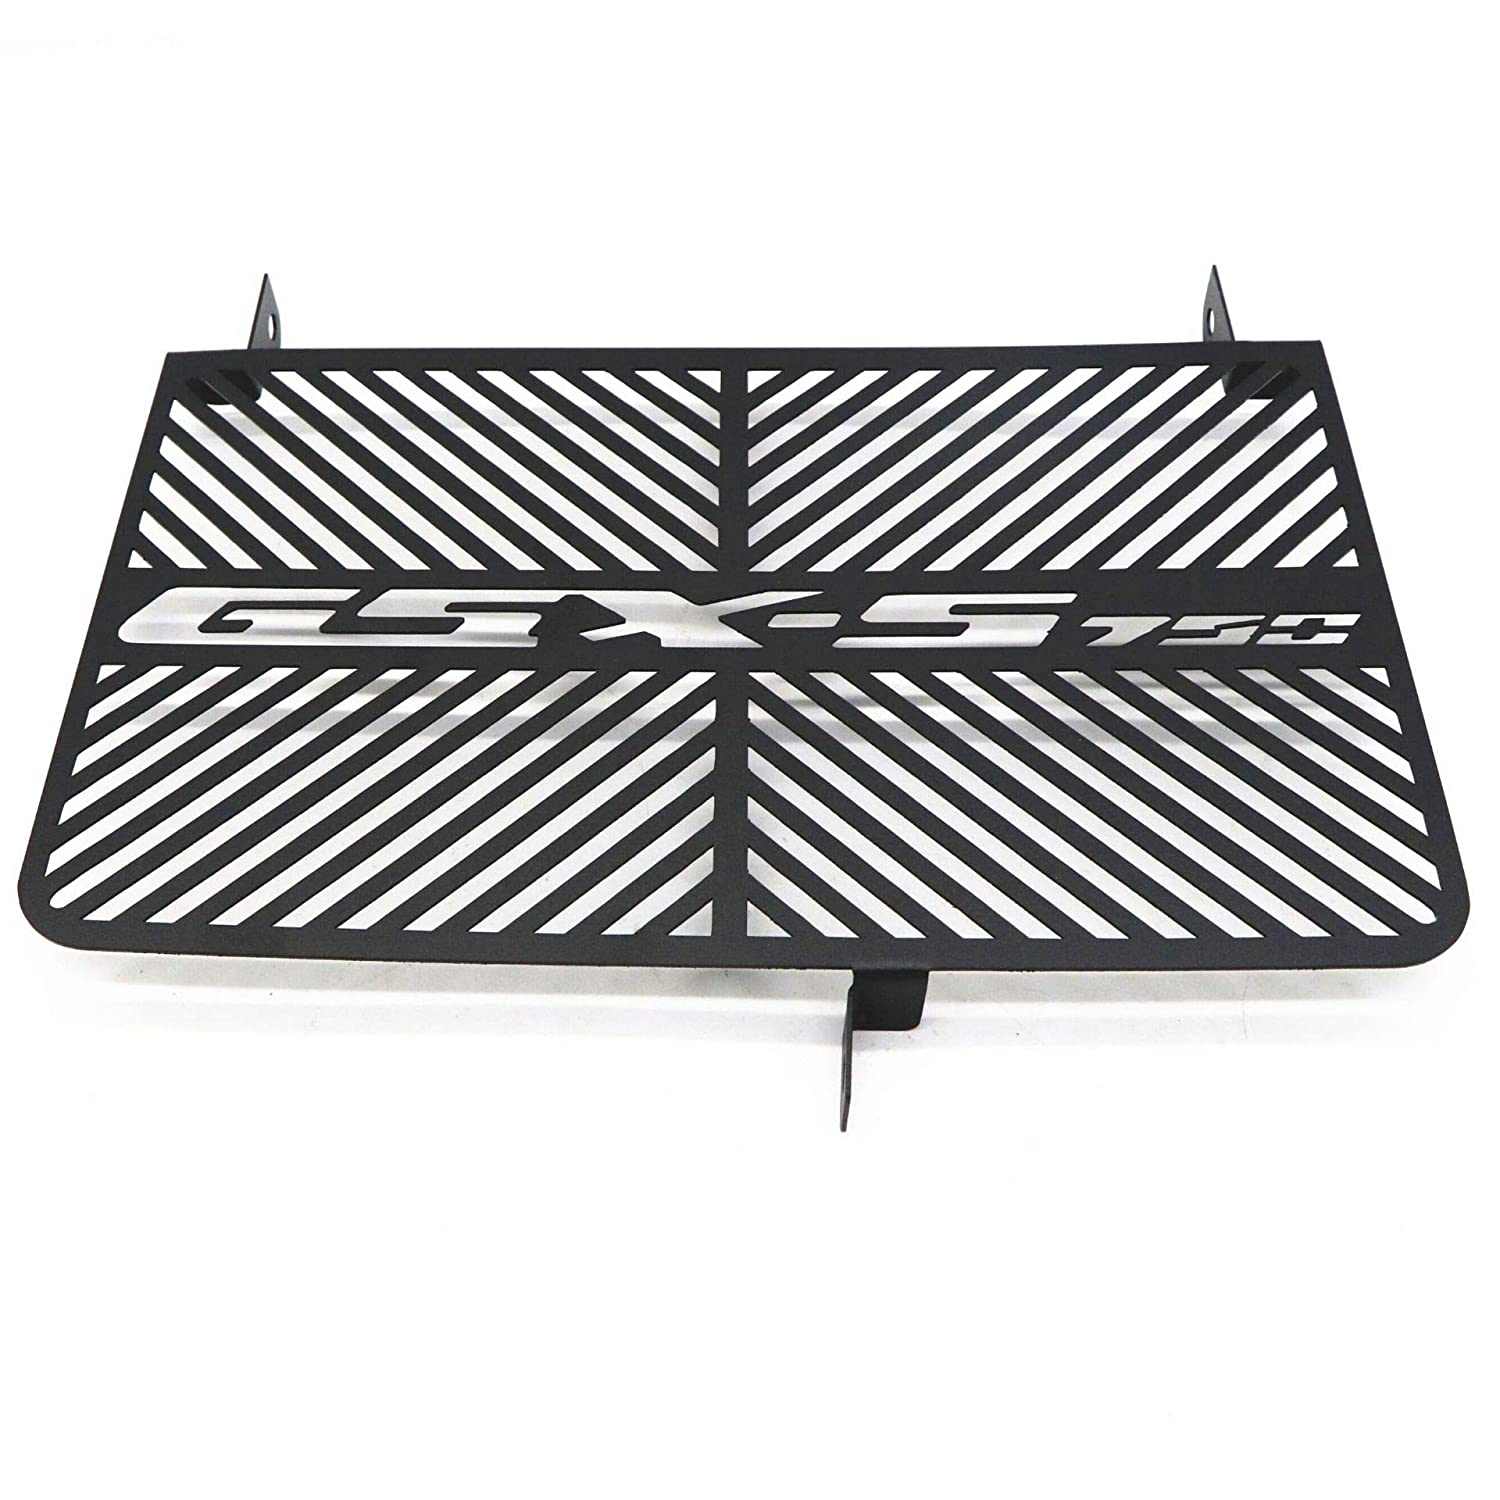 Romsion Vehicle Accessories For SUZUKI GSX-S750 GSXS750 GSXS 750 2015-2018 Motorcycle Radiator Grille Guard Cover Protector Fuel Tank Protection Net black